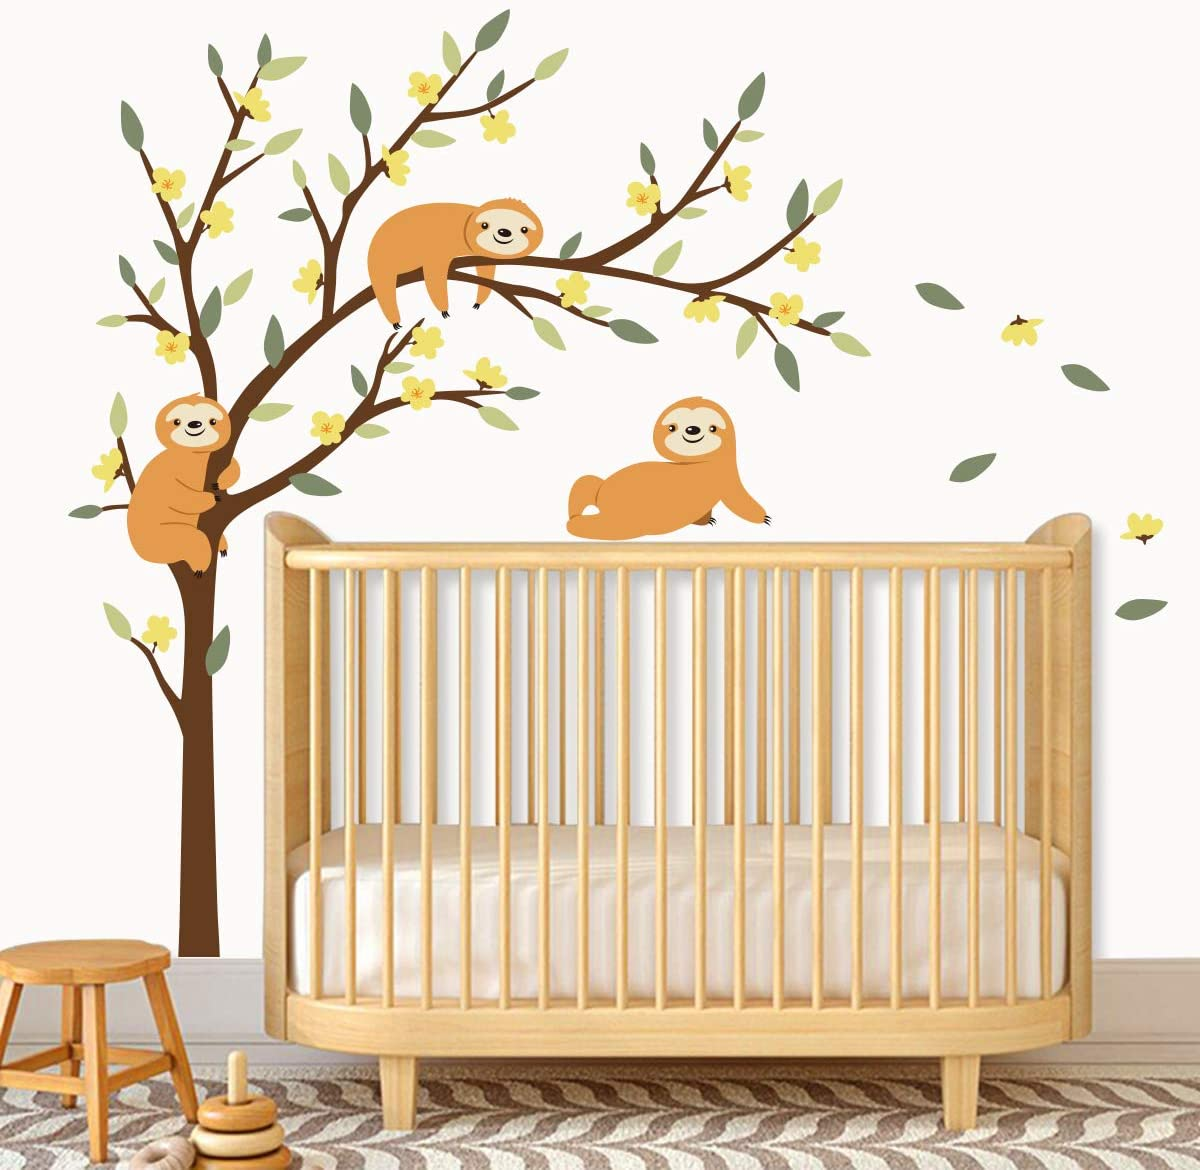 Amazon Com Decalmile Large Tree And Sloths Wall Decals Kids Wall Stickers Baby Nursery Childrens Bedroom Wall Decor Tree Size 46 Inches Kitchen Dining